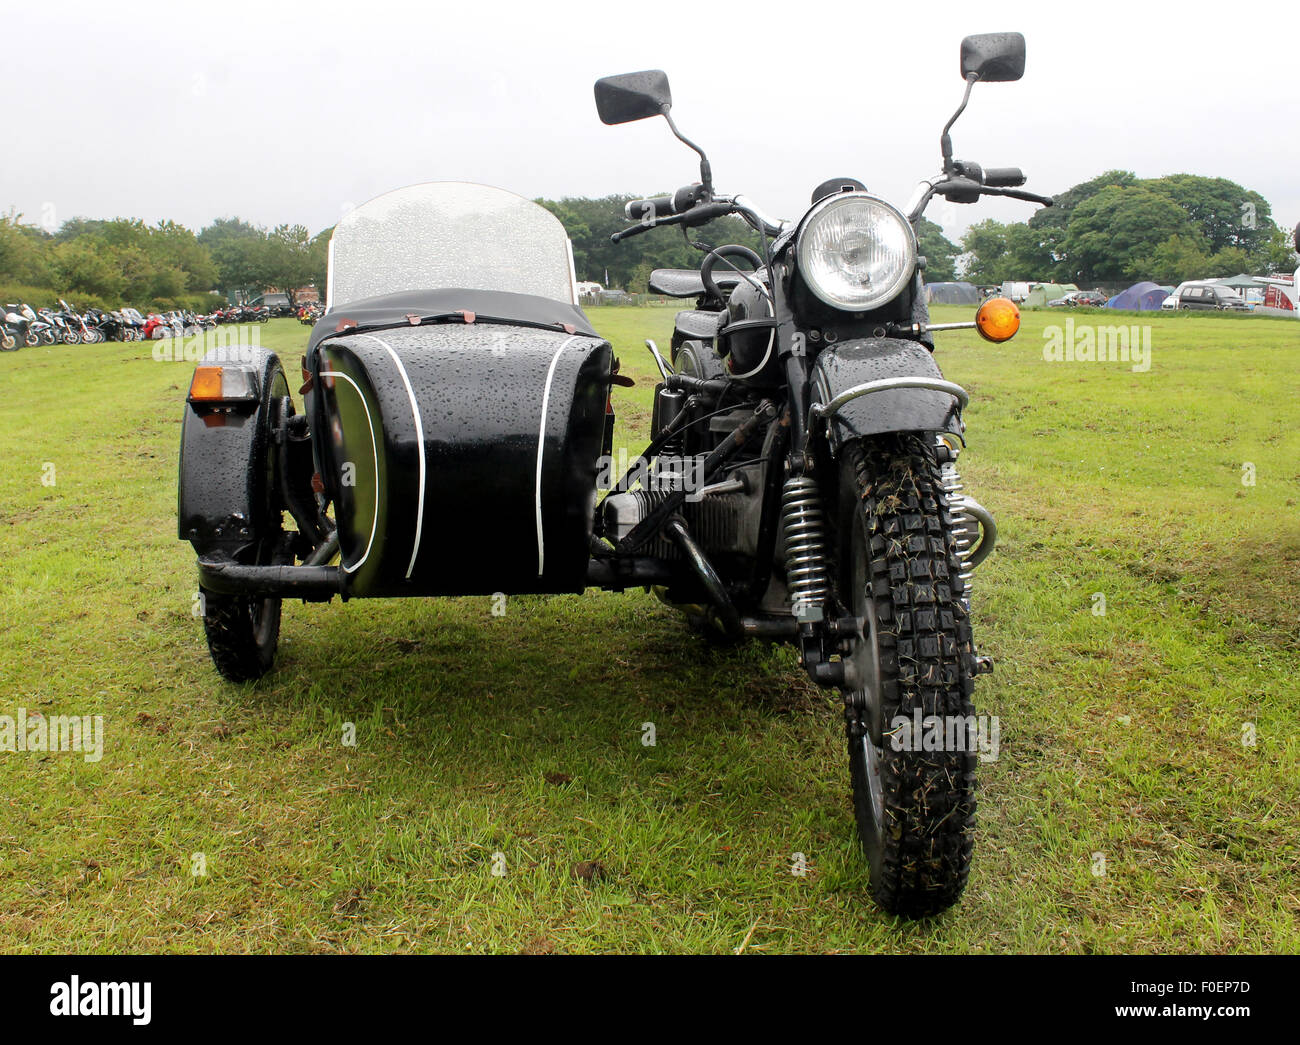 Motorbike and sidecar in a countryside field. - Stock Image